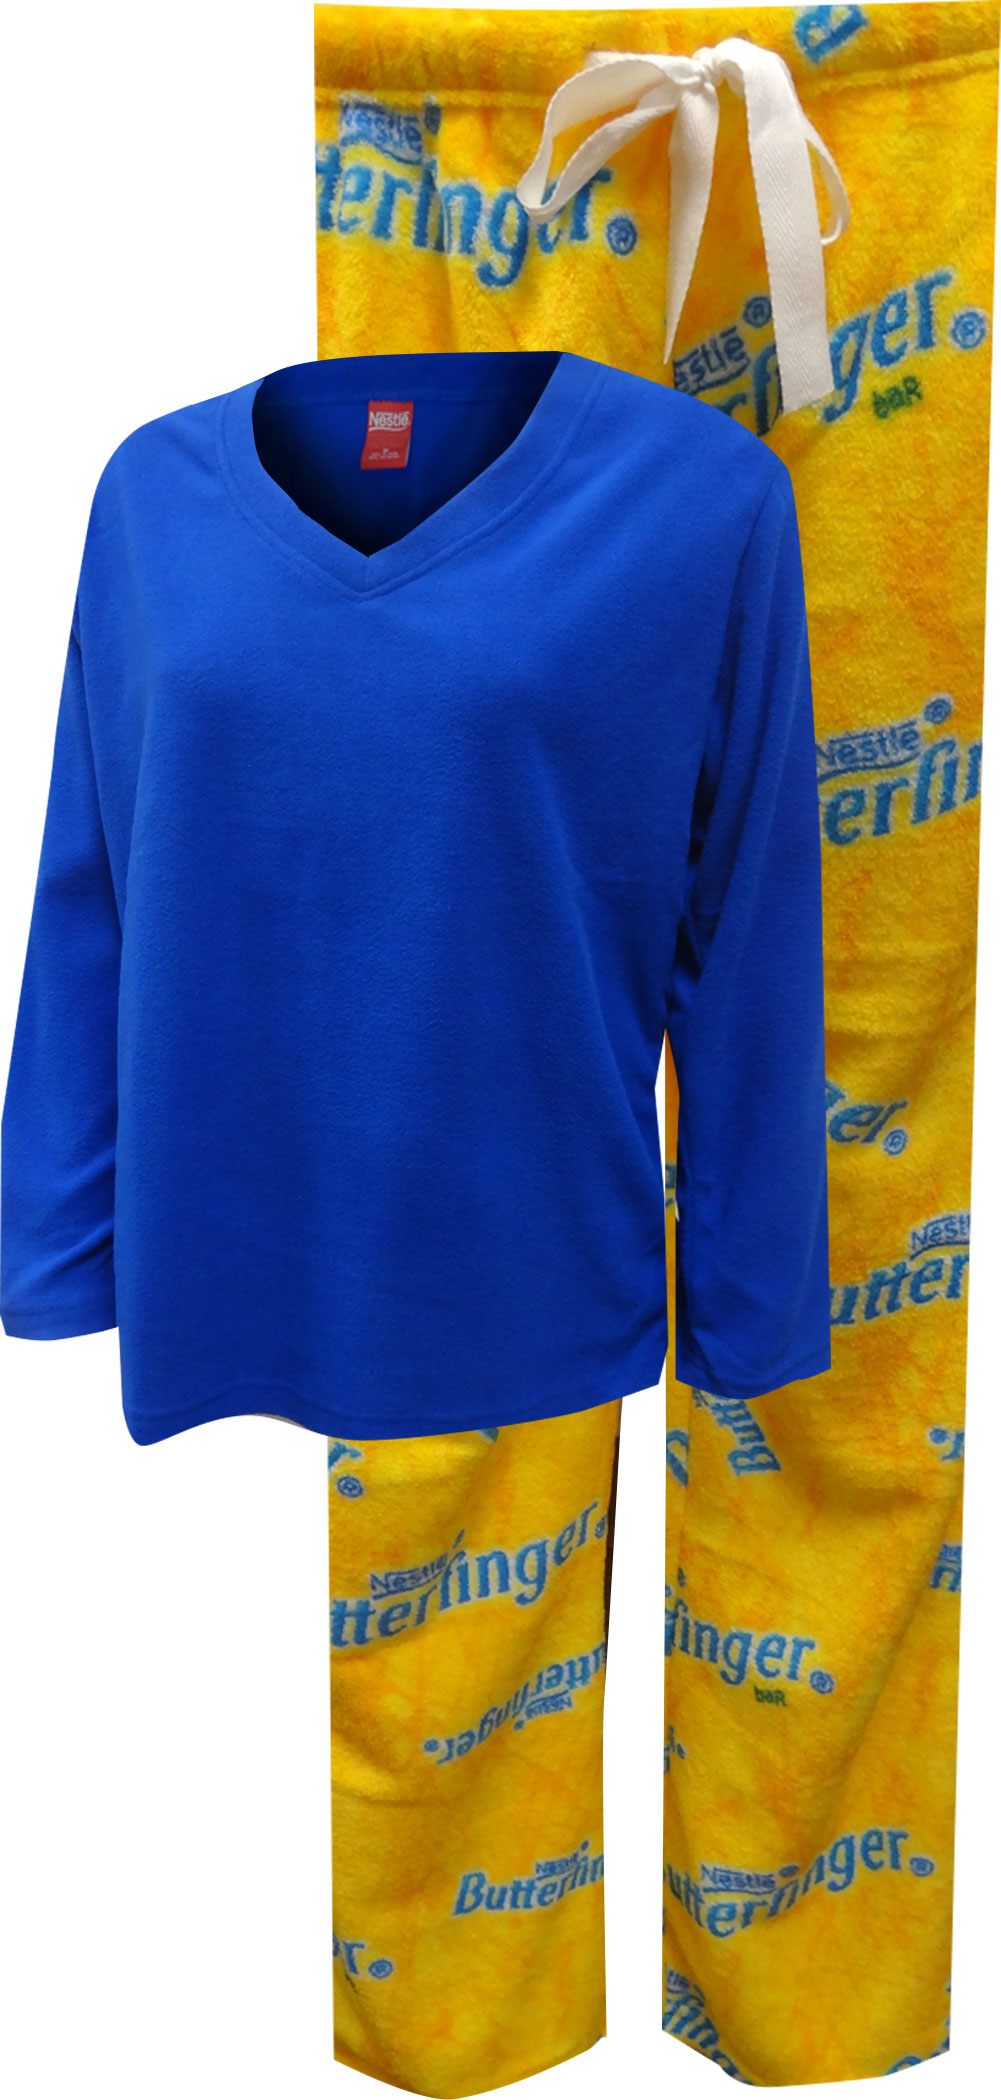 NESTLE Butterfinger Candy Pajamas 77d75ef19